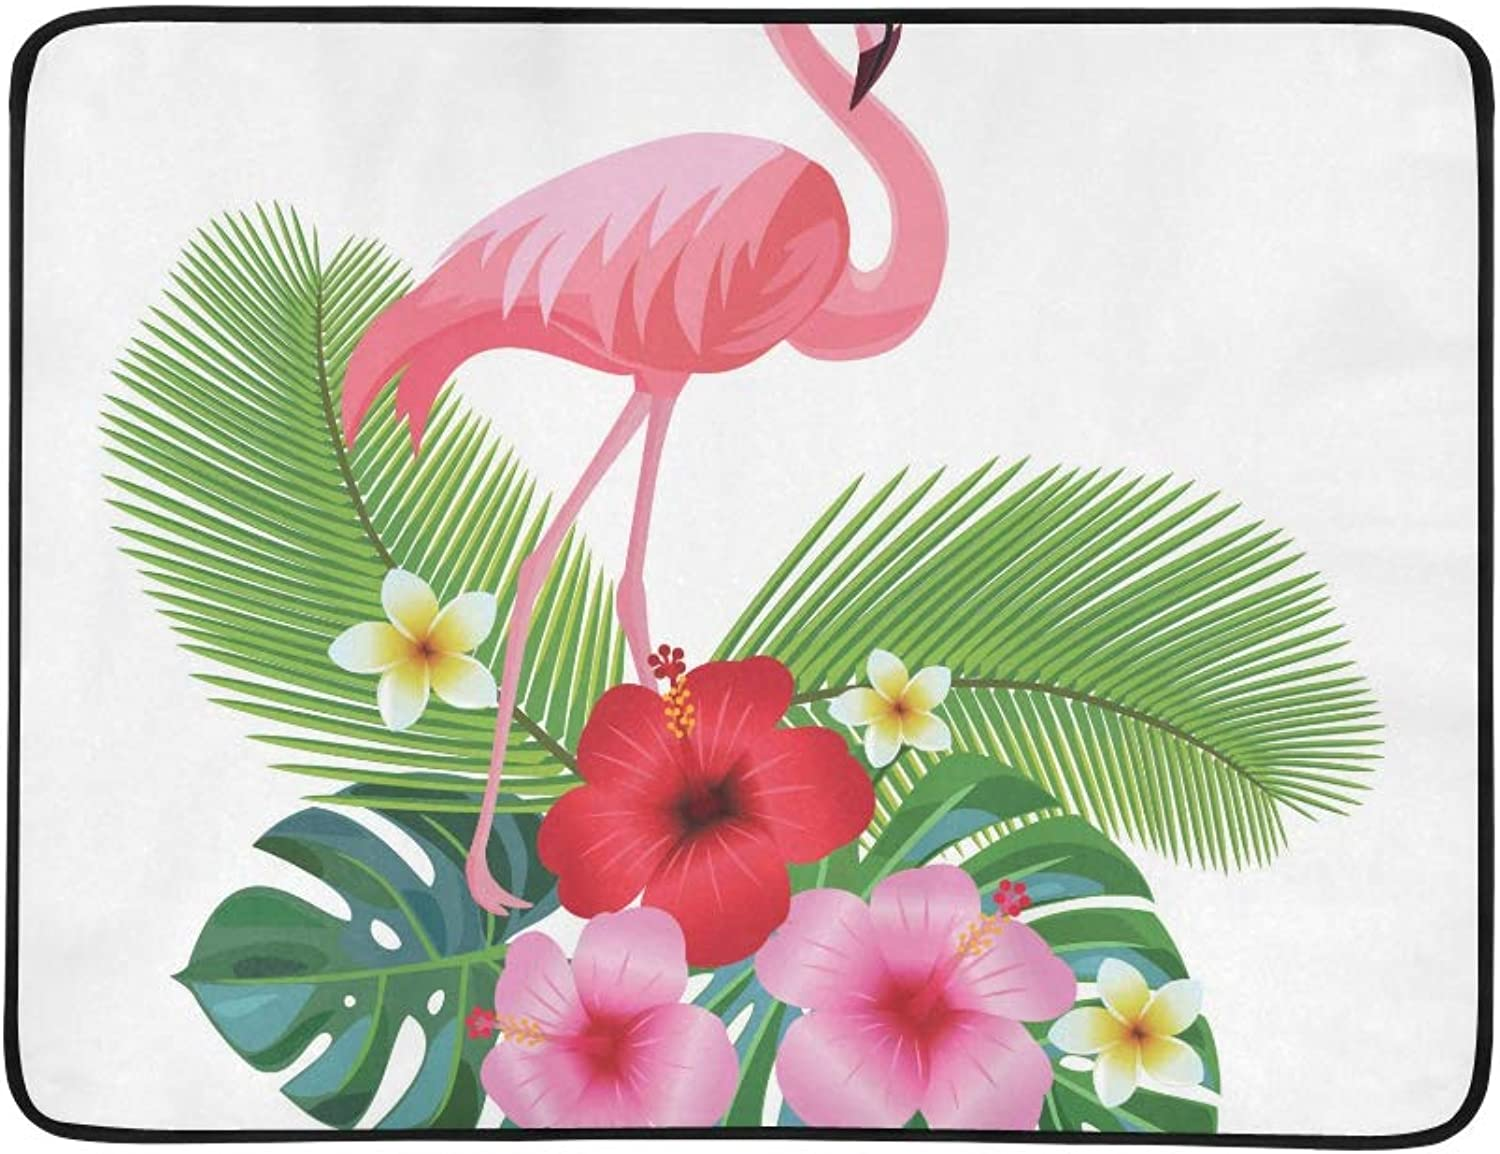 Tropic Flower Palm Leaf and Flamingo Pattern Portable and Foldable Blanket Mat 60x78 Inch Handy Mat for Camping Picnic Beach Indoor Outdoor Travel